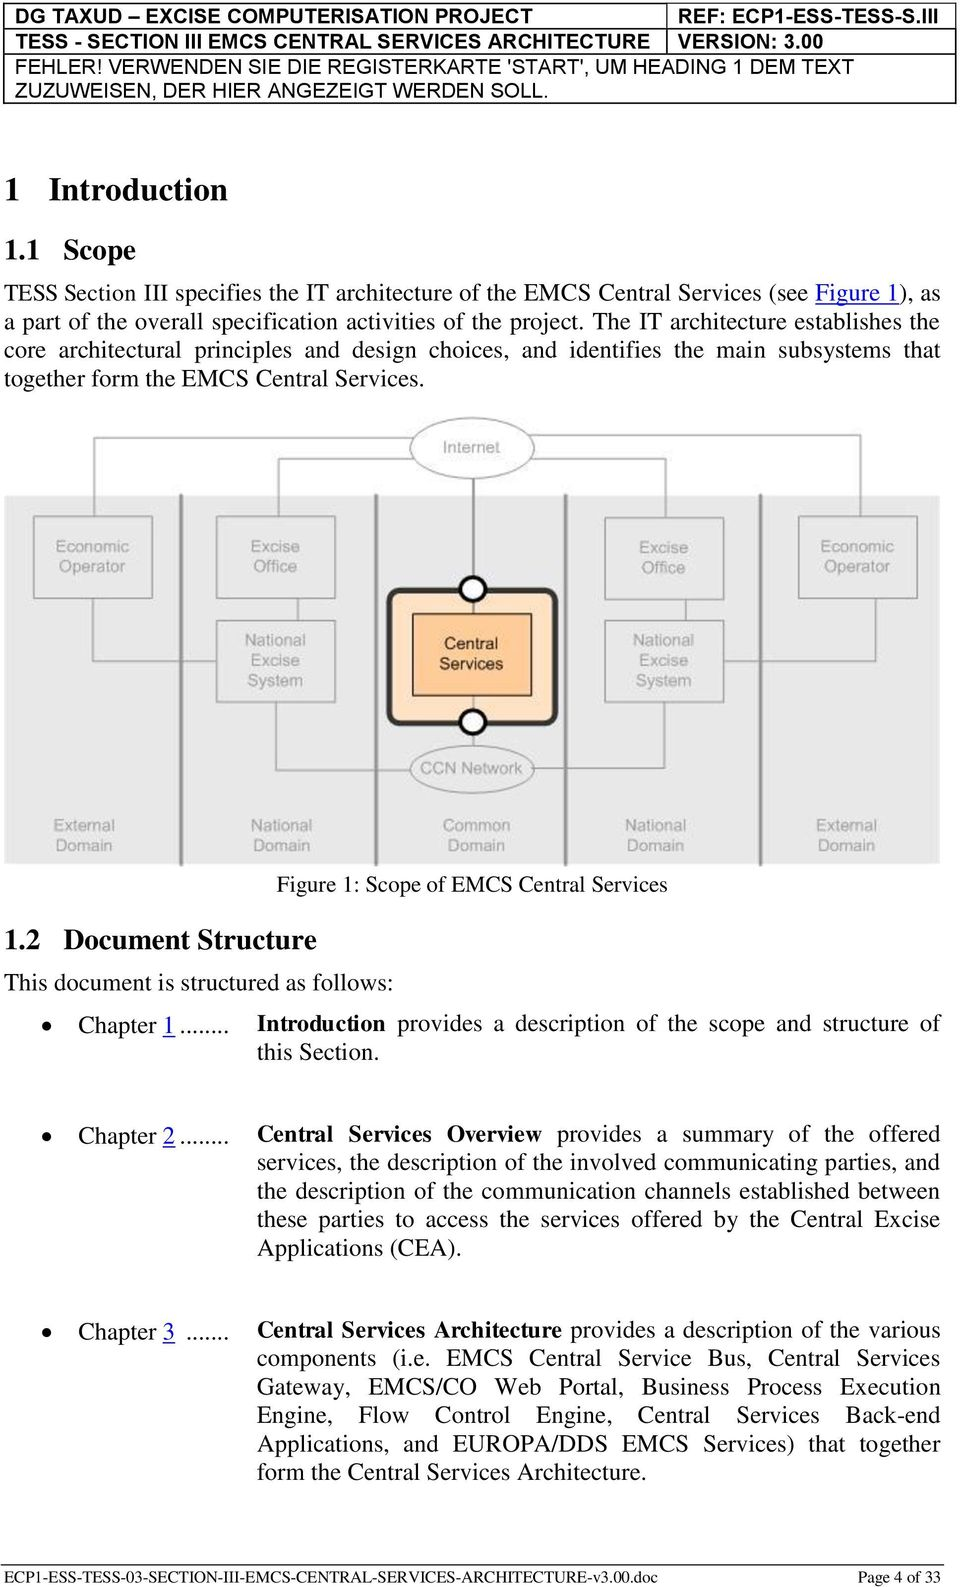 2 Document Structure This document is structured as follows: Figure 1: Scope of EMCS Central Services Chapter 1... Introduction provides a description of the scope and structure of this Section.